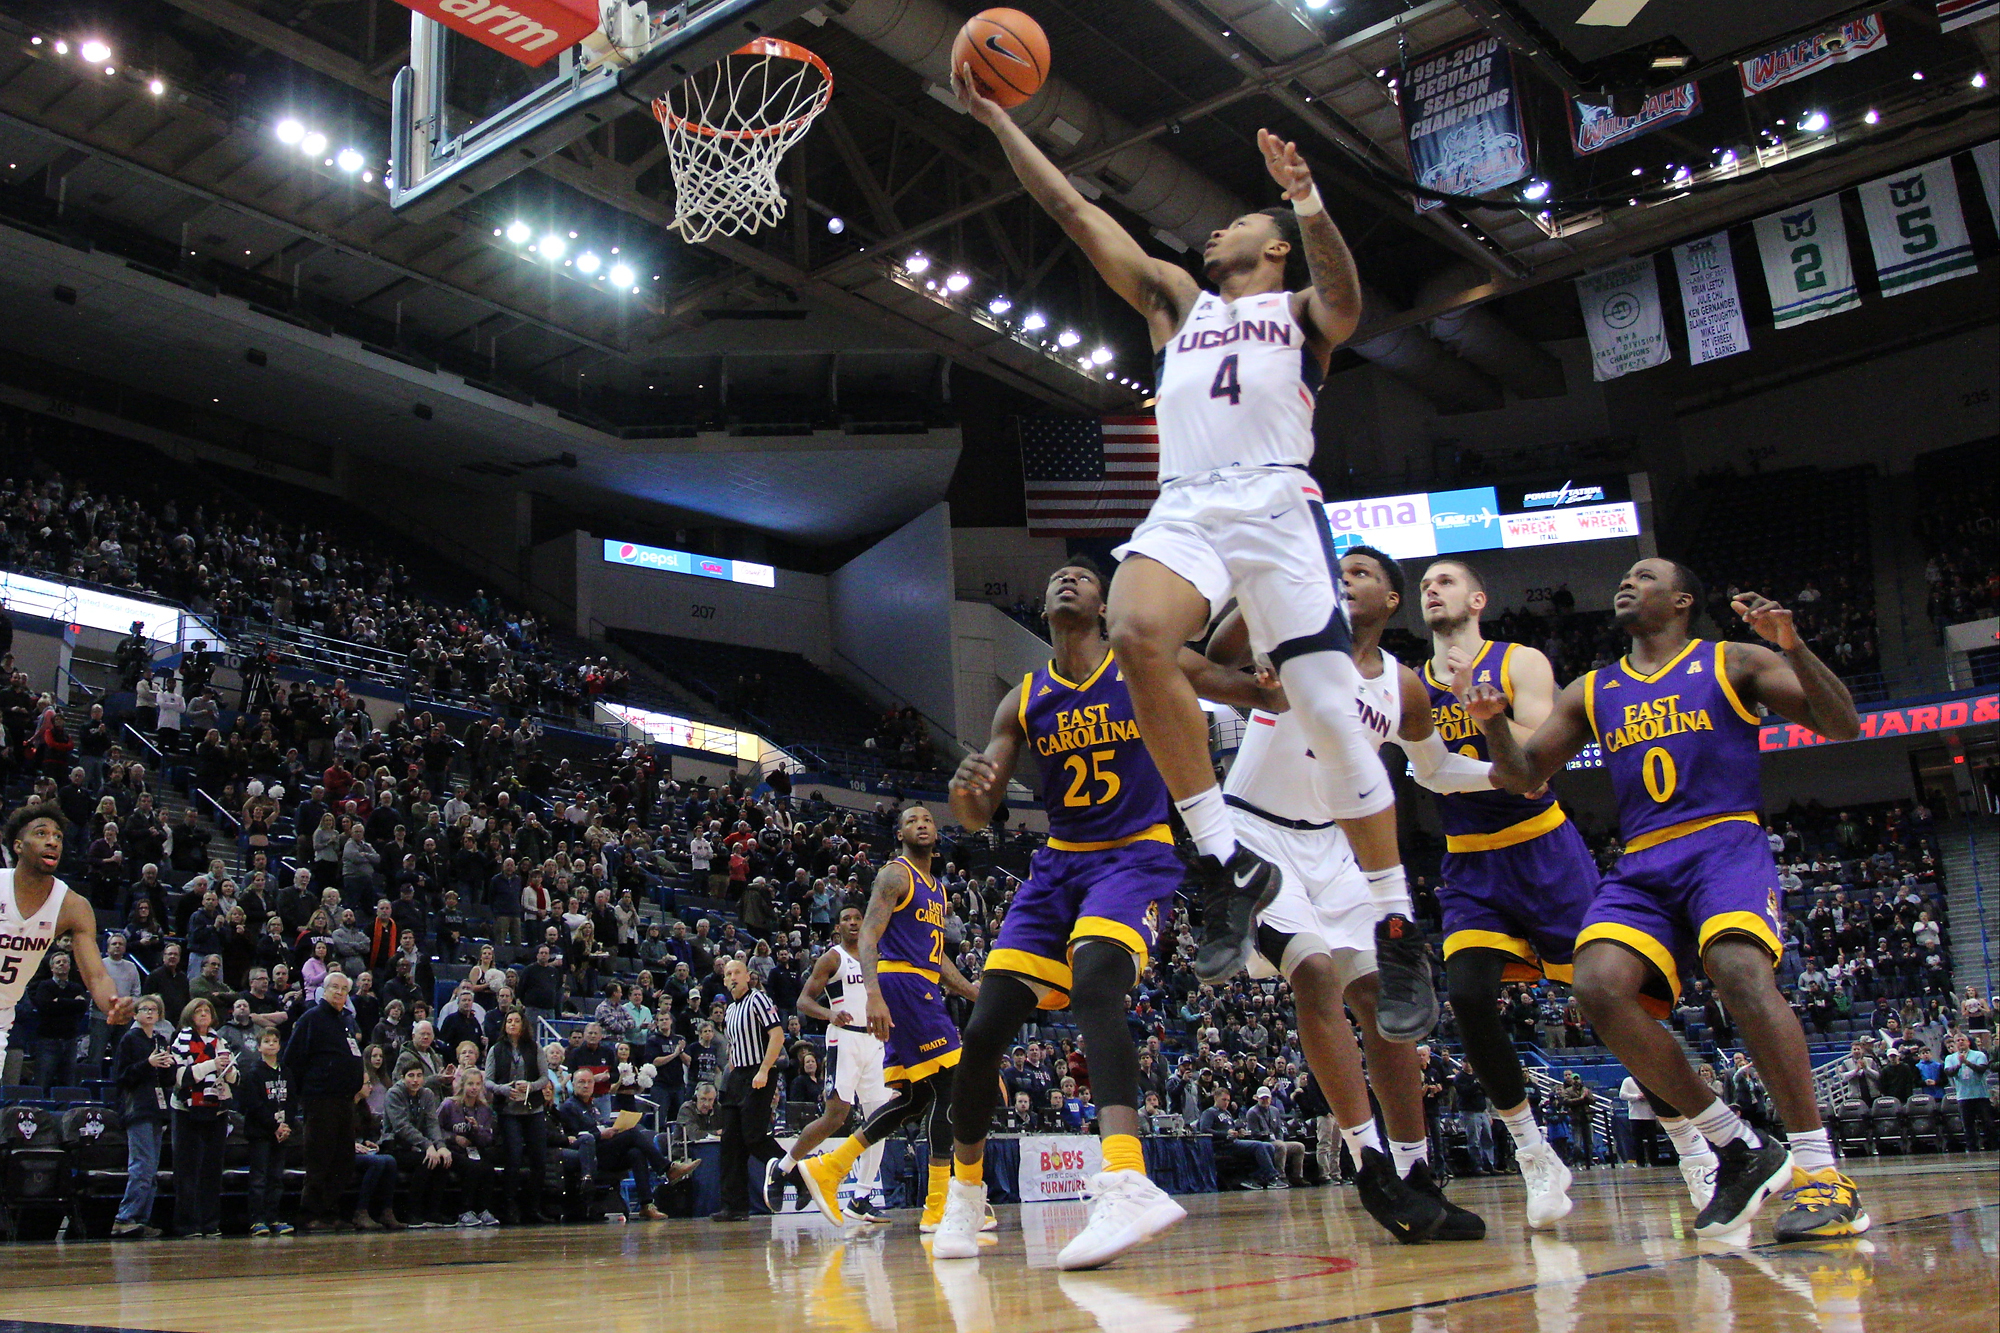 photo gallery: ecu pirates @ uconn men's basketball - 1/6/18 - the